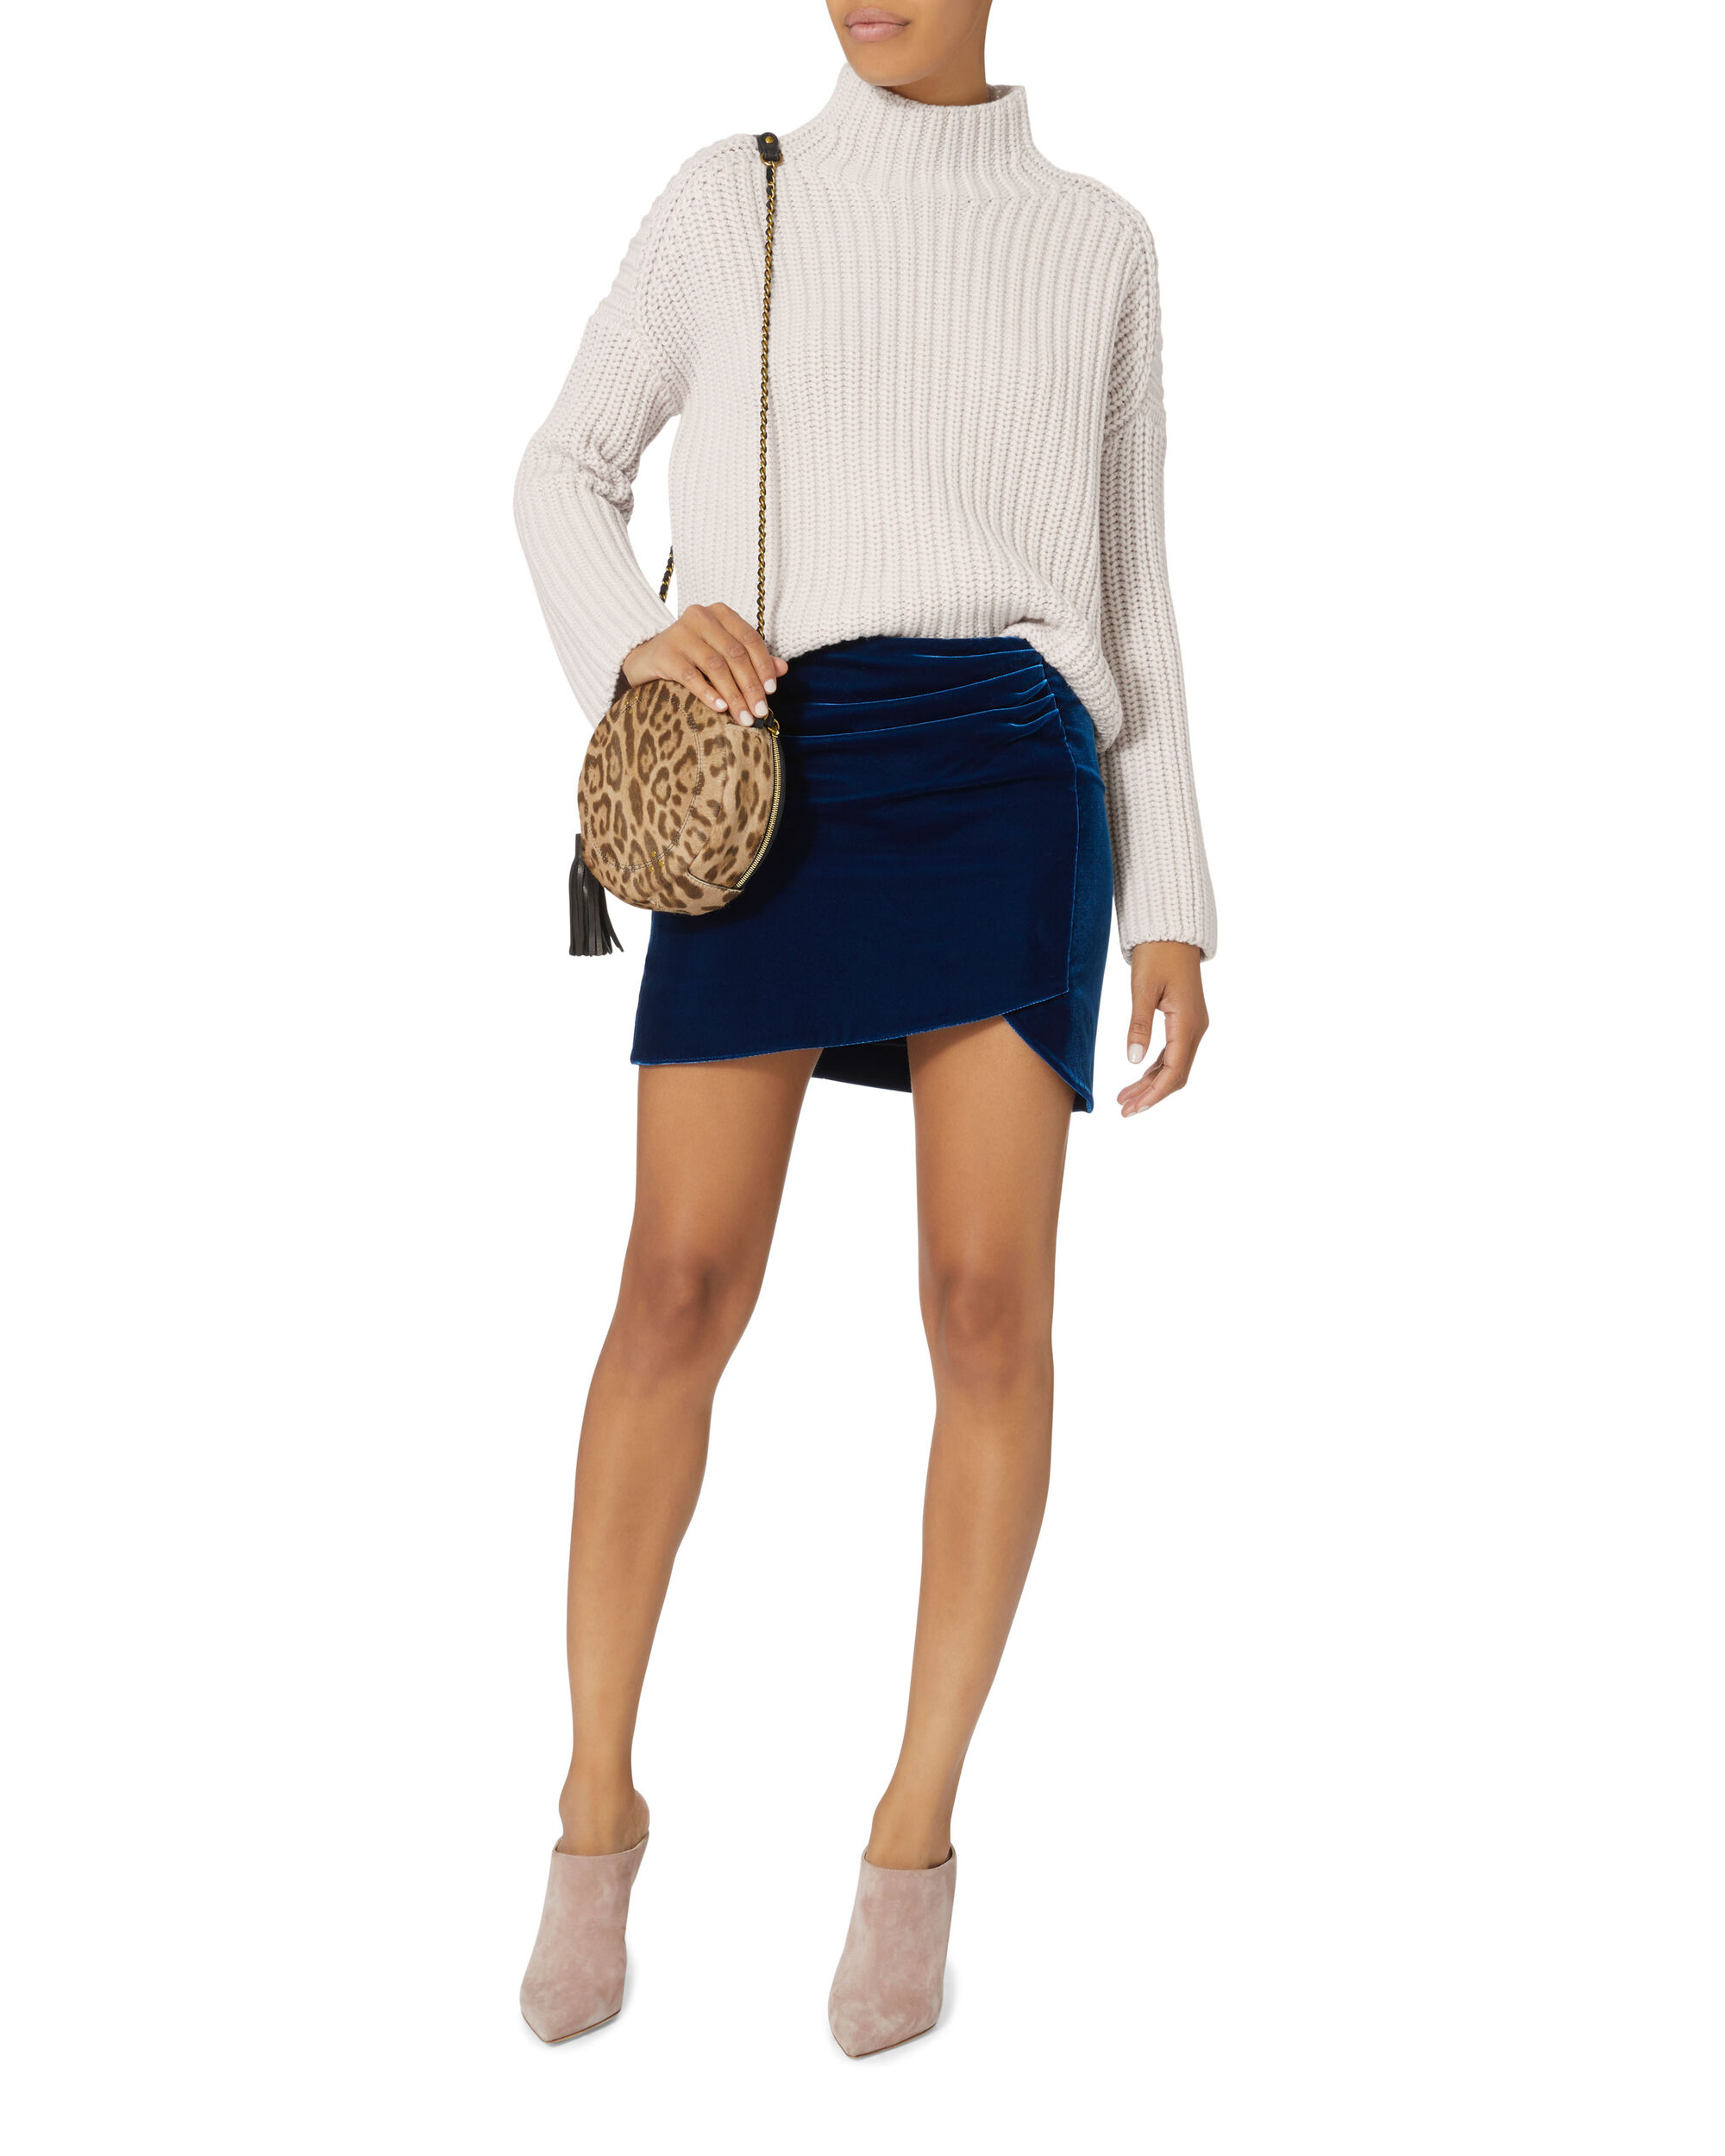 Armellyn Ribbed Turtleneck Sweater, NUDE, hi-res